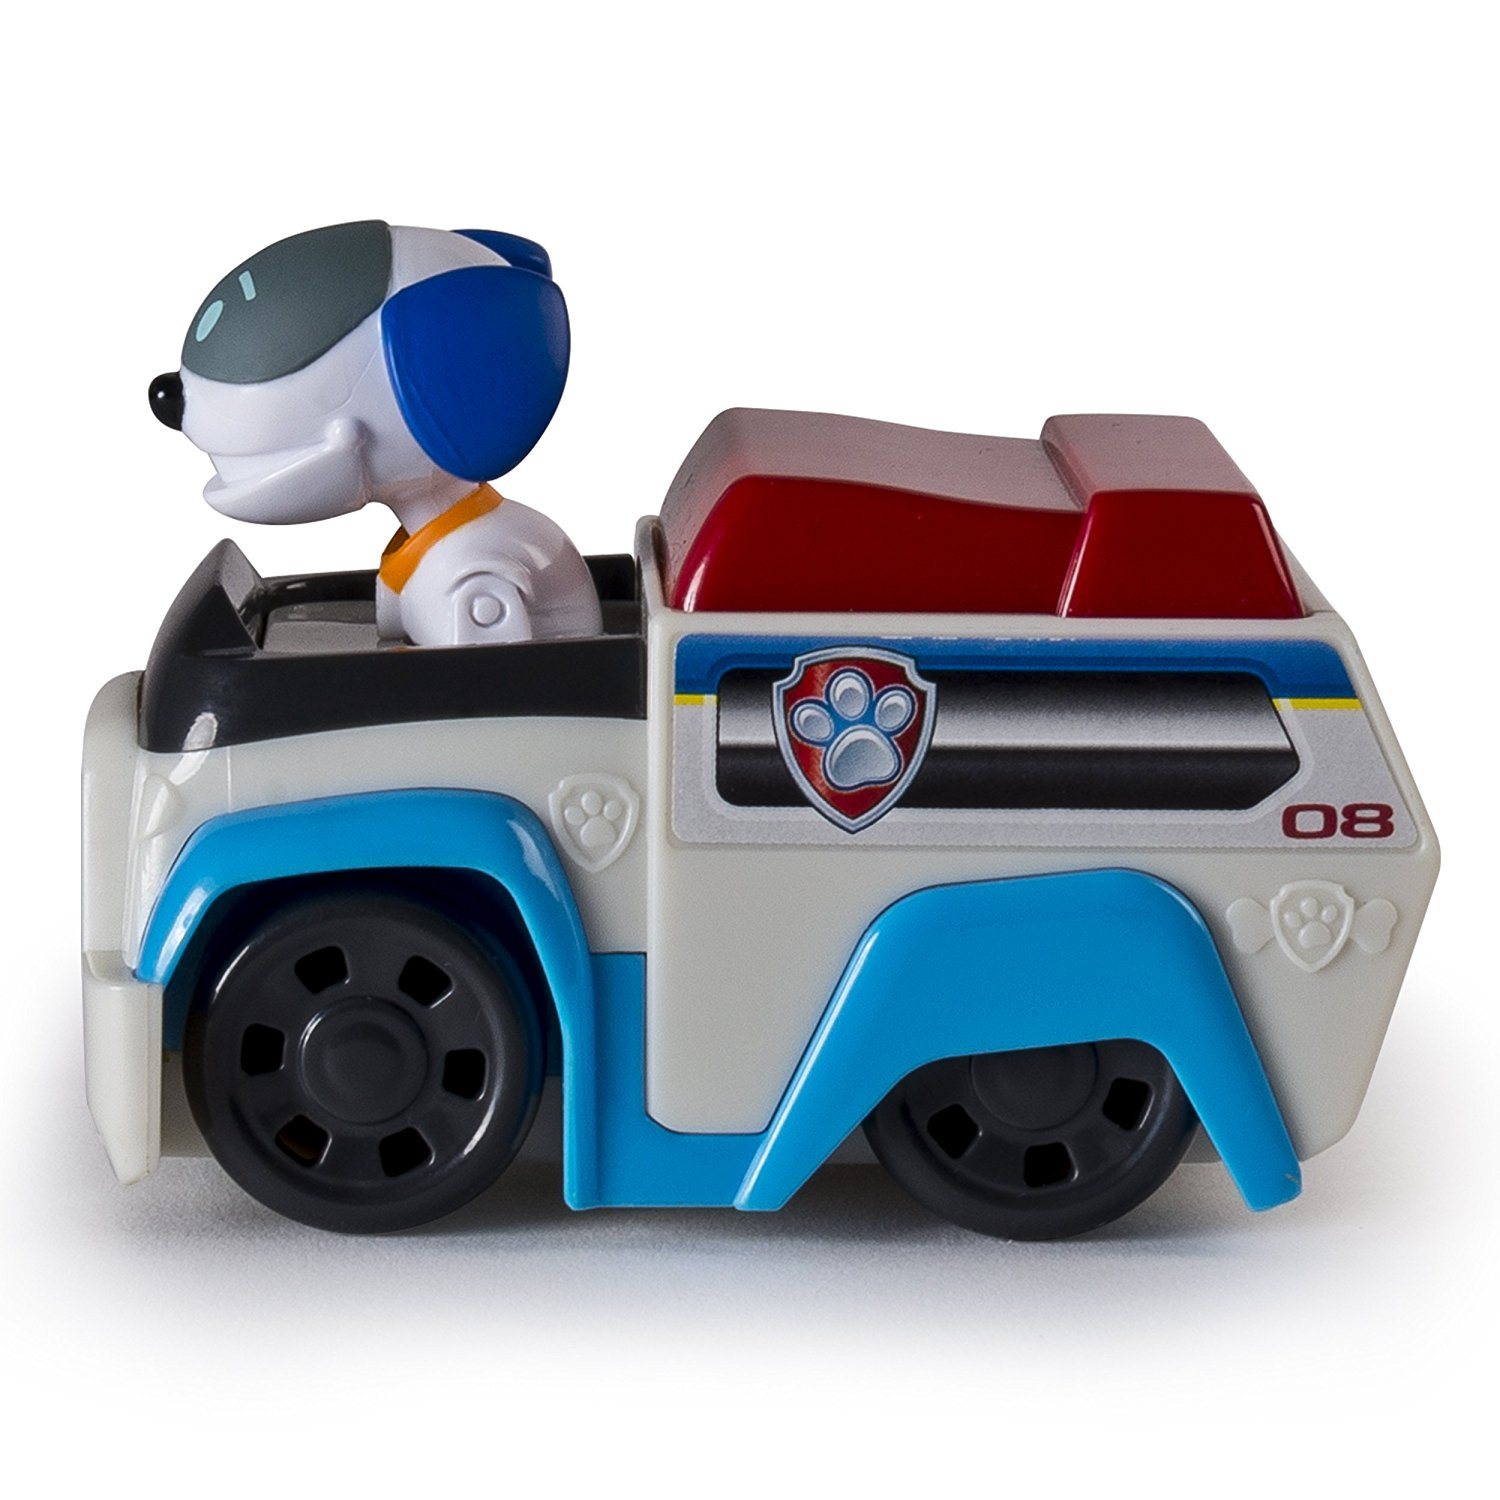 Robo Dog Patroller Racer Vehicle Robodog S Paw Patrol Racer Is Made For Speed With Real Working Wheels For Push And Play Action By Paw Patrol Walmart Com Walmart Com